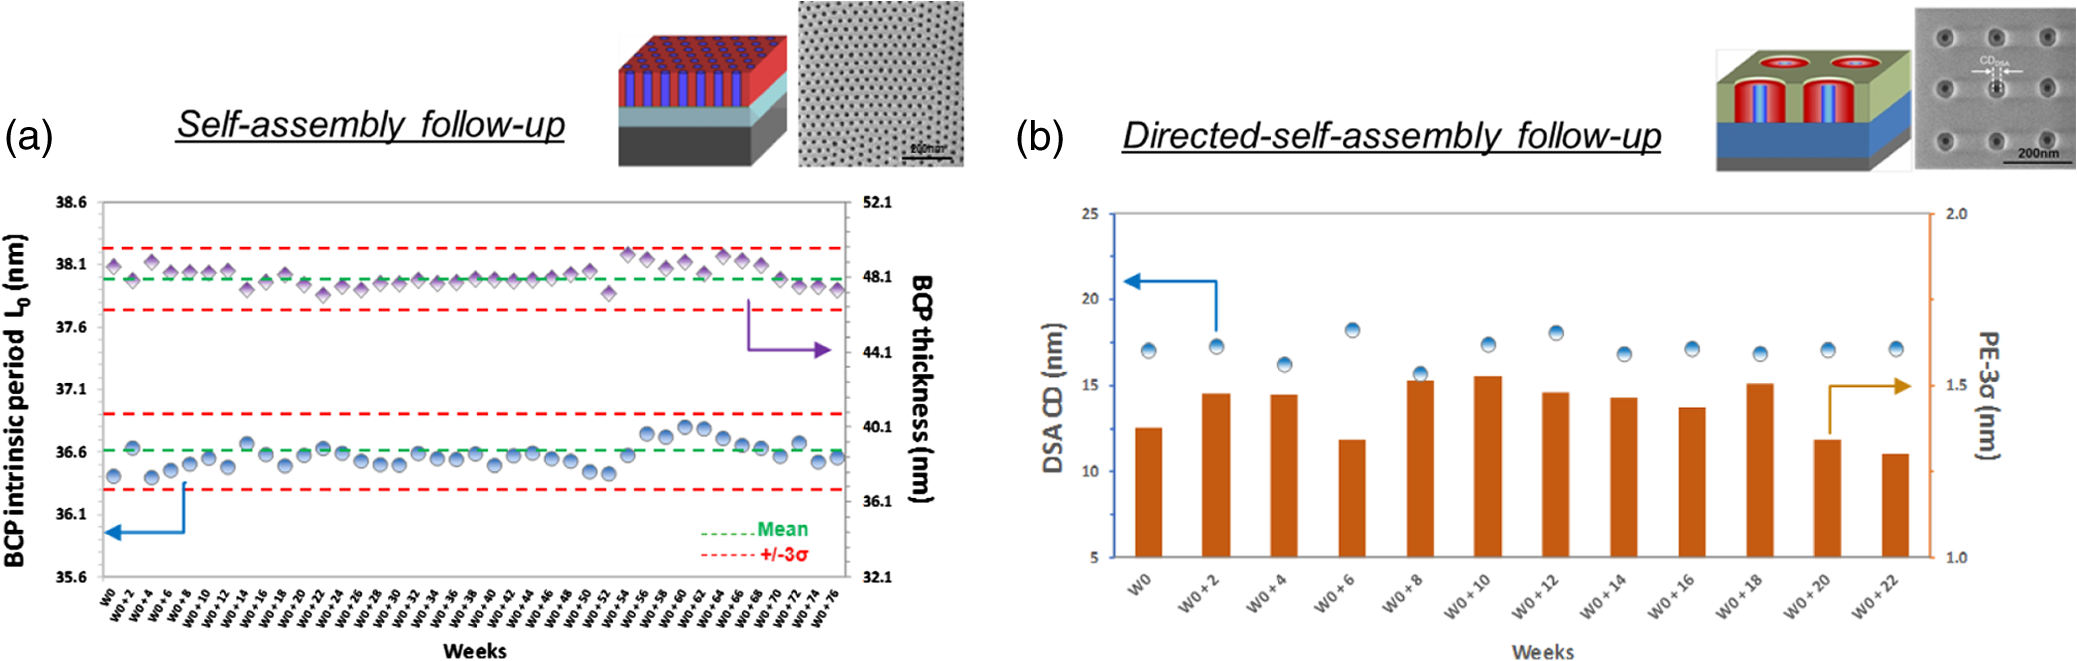 Process highlights to enhance directed self-assembly contact